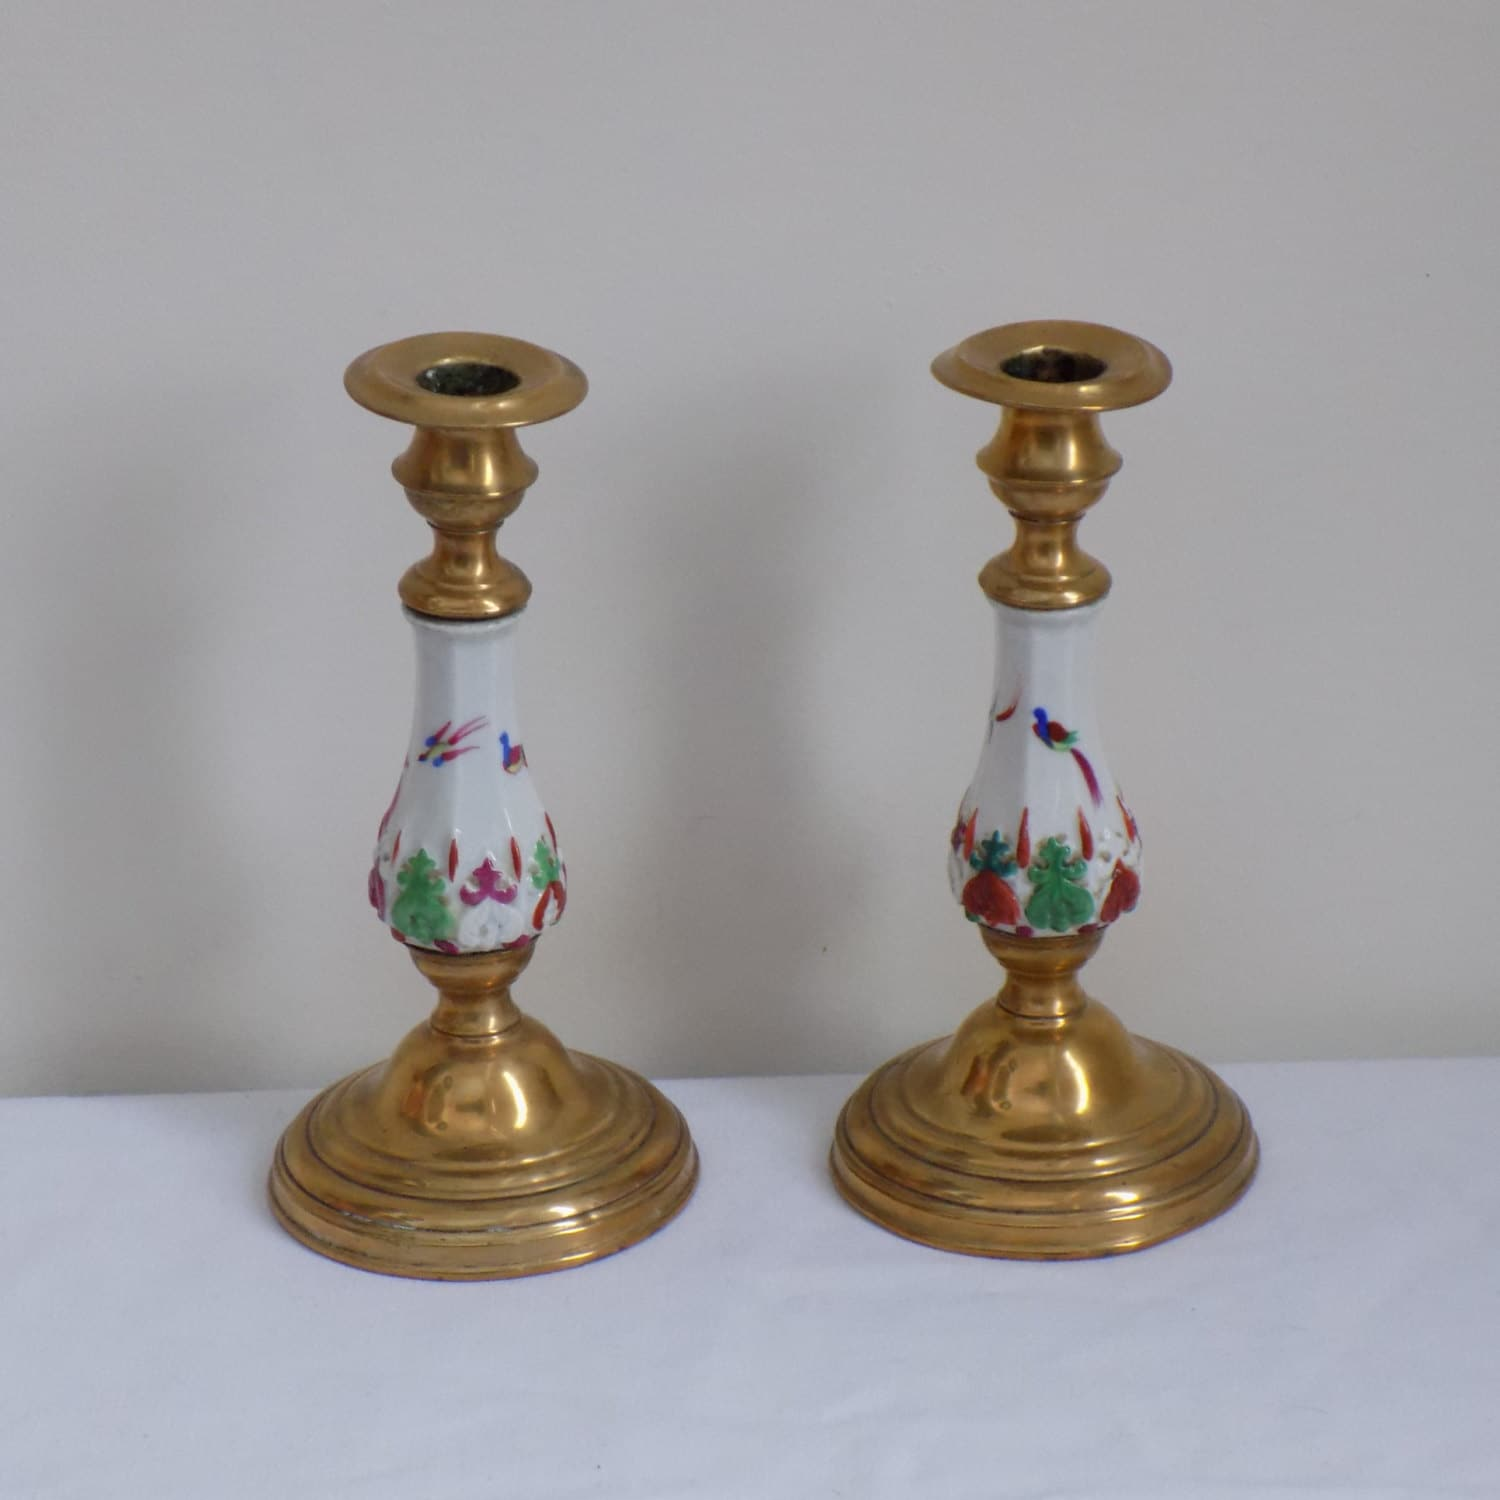 Antique Hand Painted Porcelain And Brass Candlestick Pair